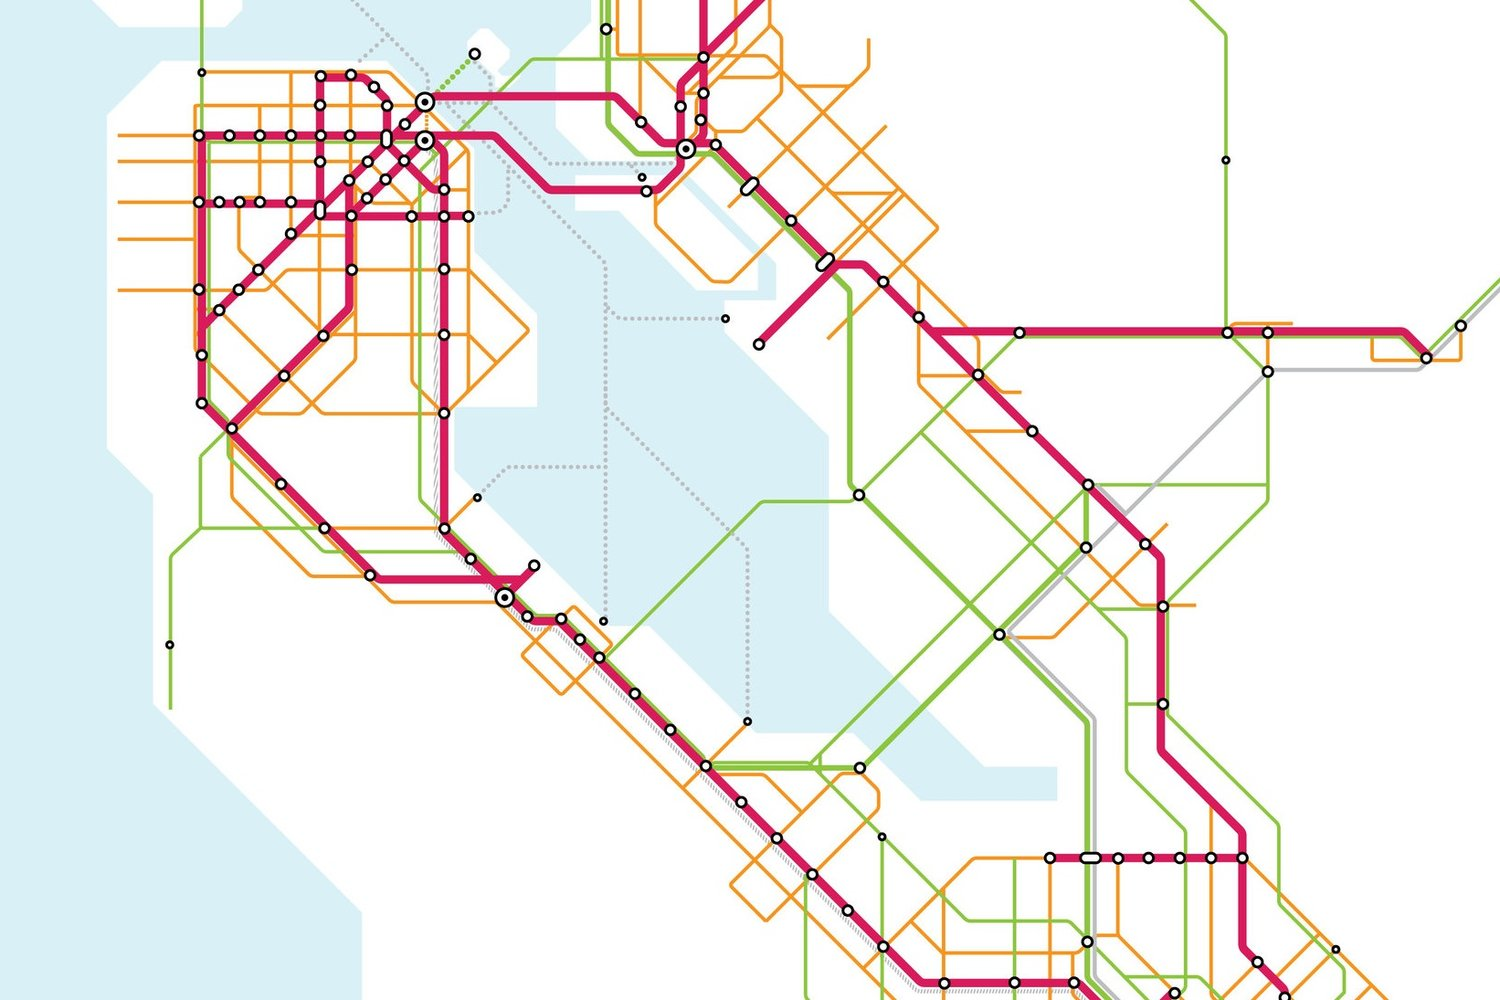 172 Norfolk St On Subway Map.Vision Map Seamless Bay Area